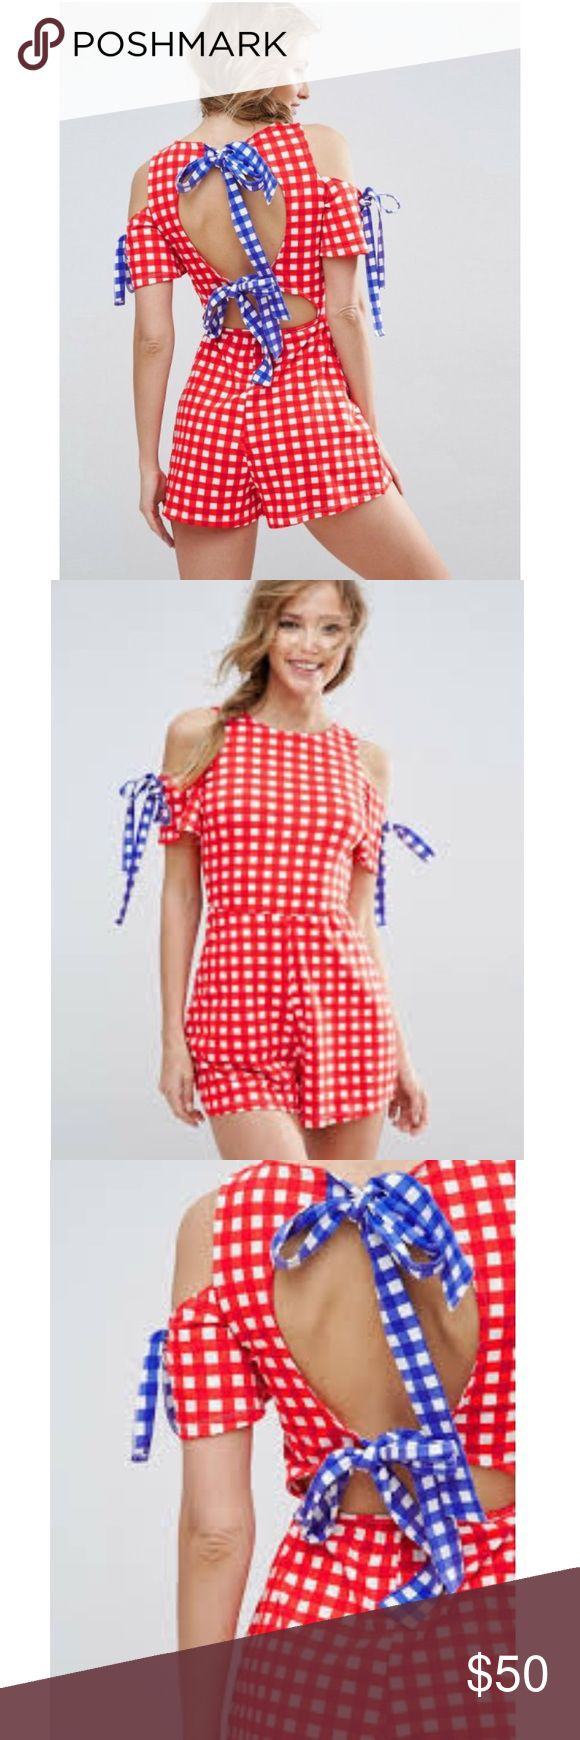 ASOS Jersey Bow Back Gingham Romper This is an NWT ASOS Bow Back Gingham Romper. Great condition. Red, white & blue. Ties in the back twice & on both shoulders. It is stretchy.   Size 14 Armpit to armpit- 20in Length- 34in Waist- 15 1/2in across 96% cotton & 4% elastane ASOS Pants Jumpsuits & Rompers